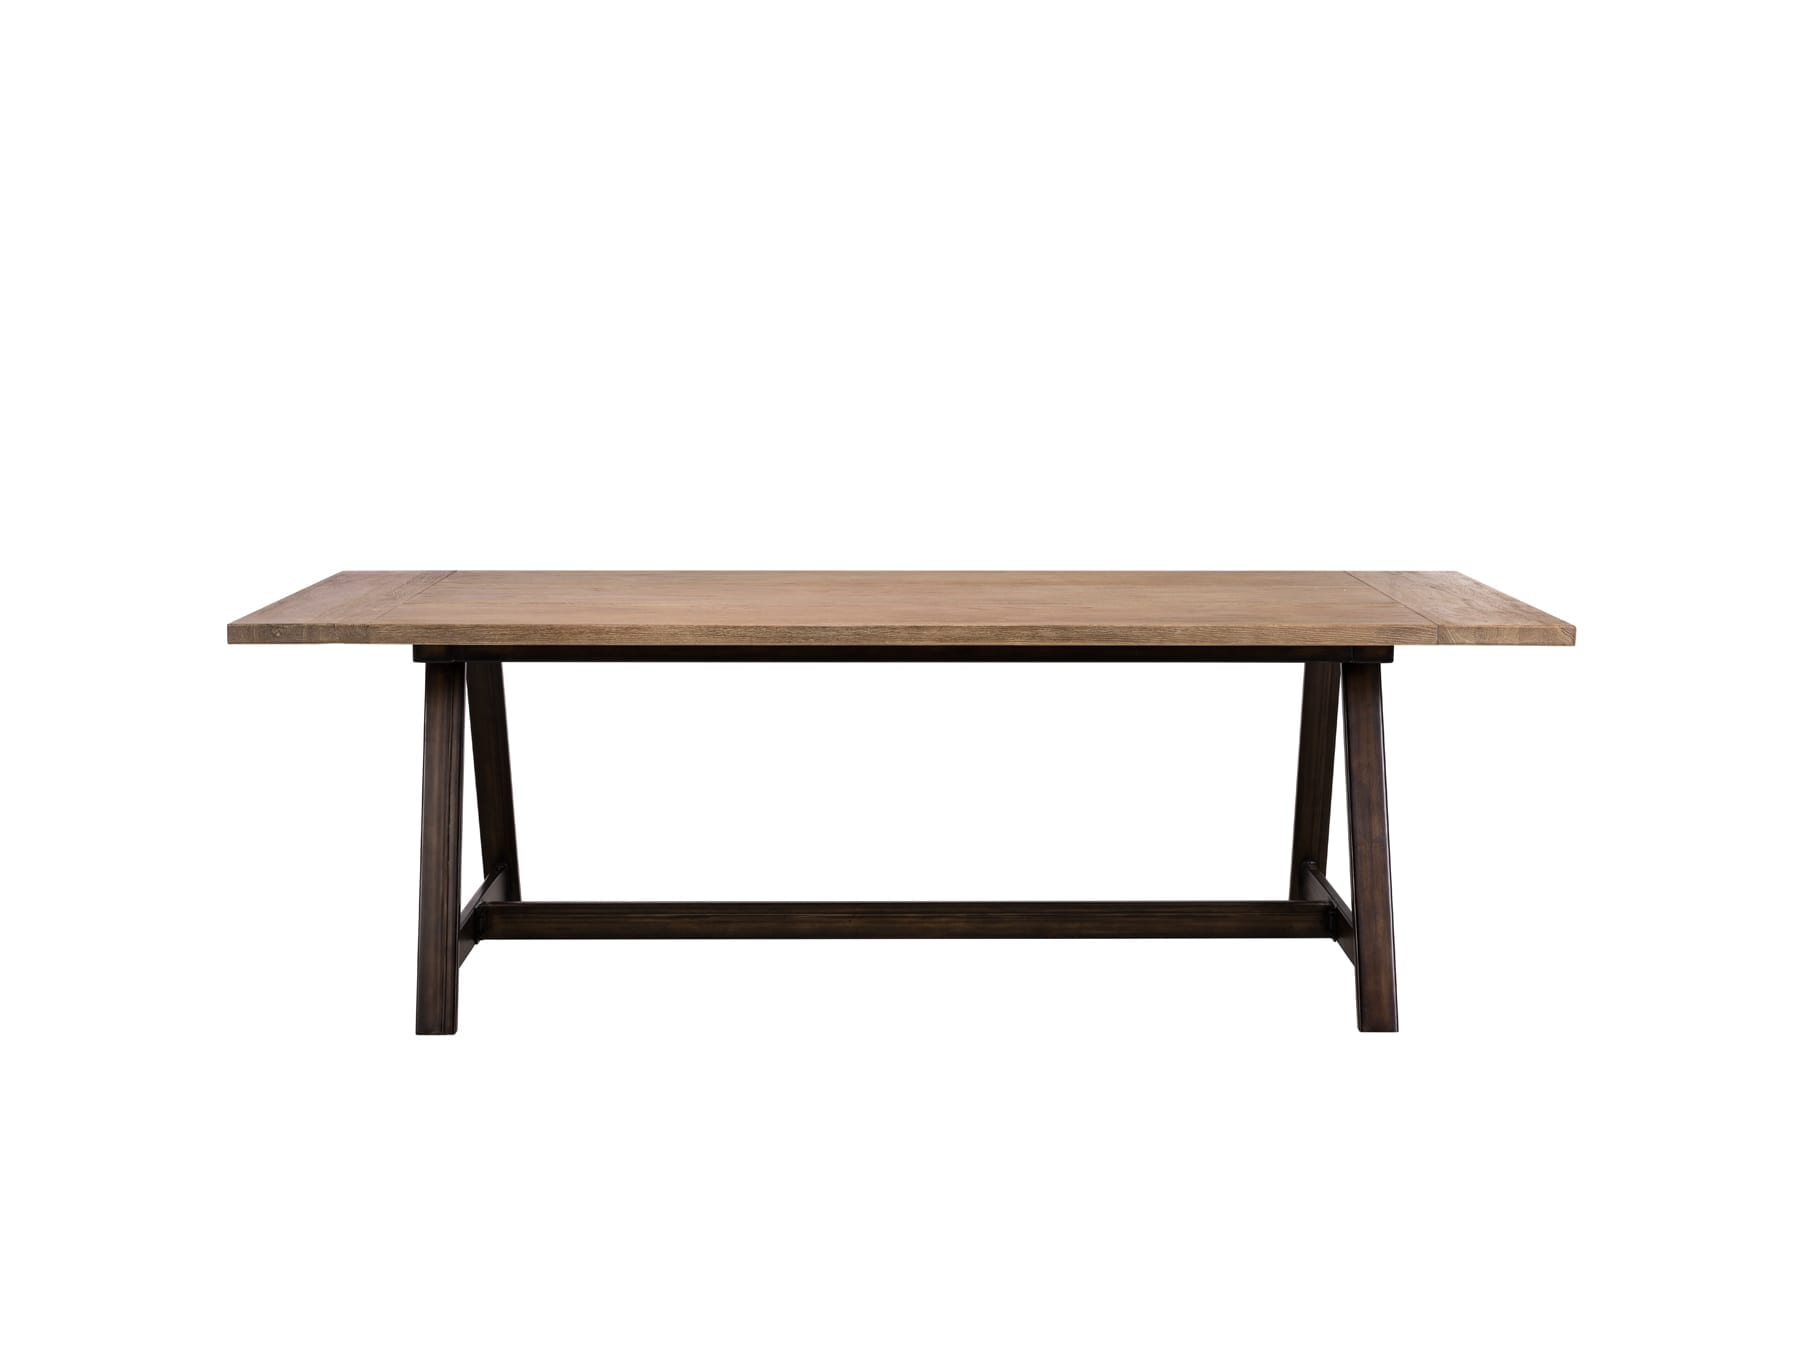 Halo Barn Dining Table available at McKenzie & Willis